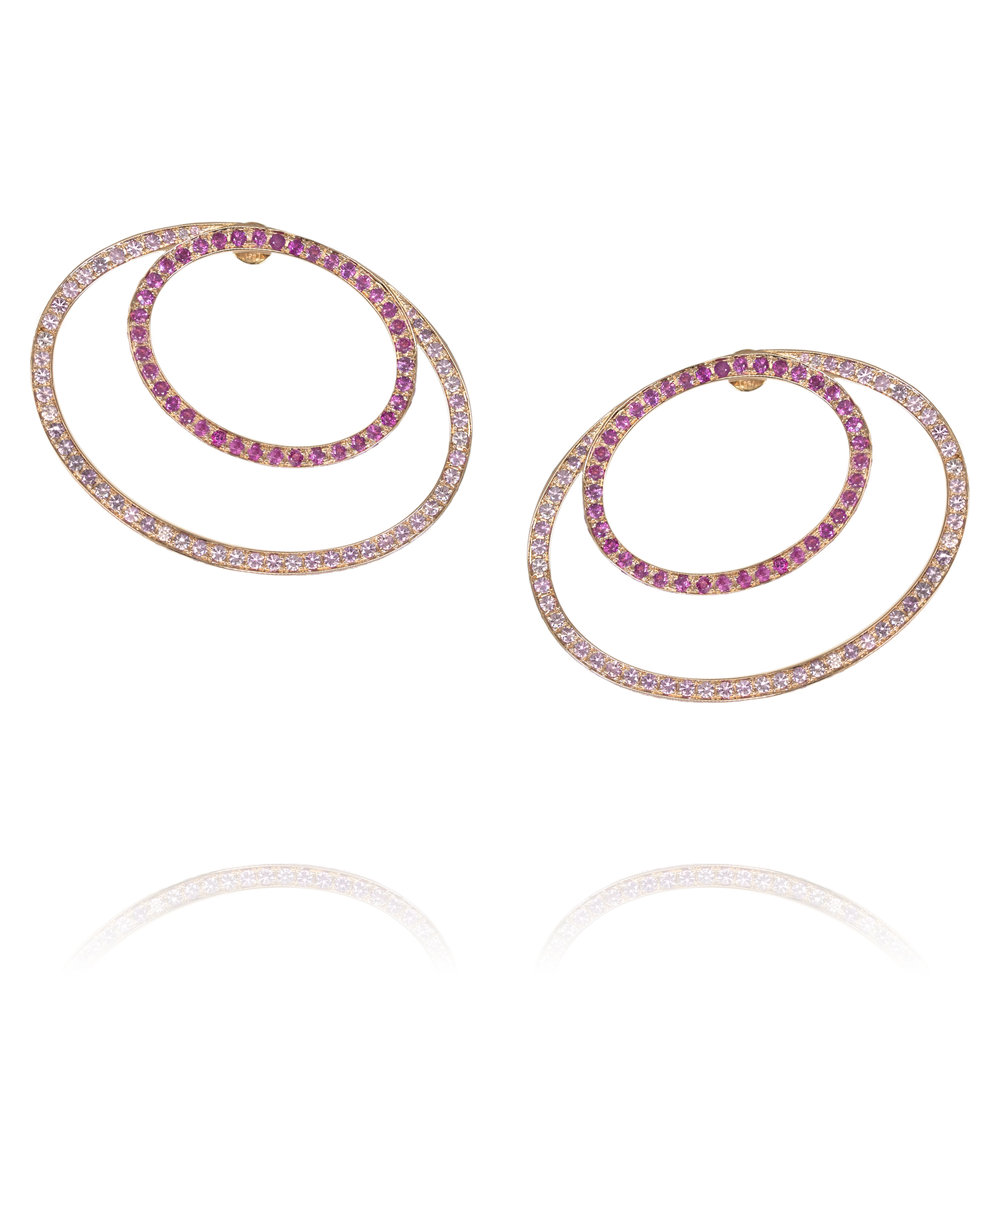 Earrings  18KT Rose Gold, Pink Sapphires  REF. MOO266